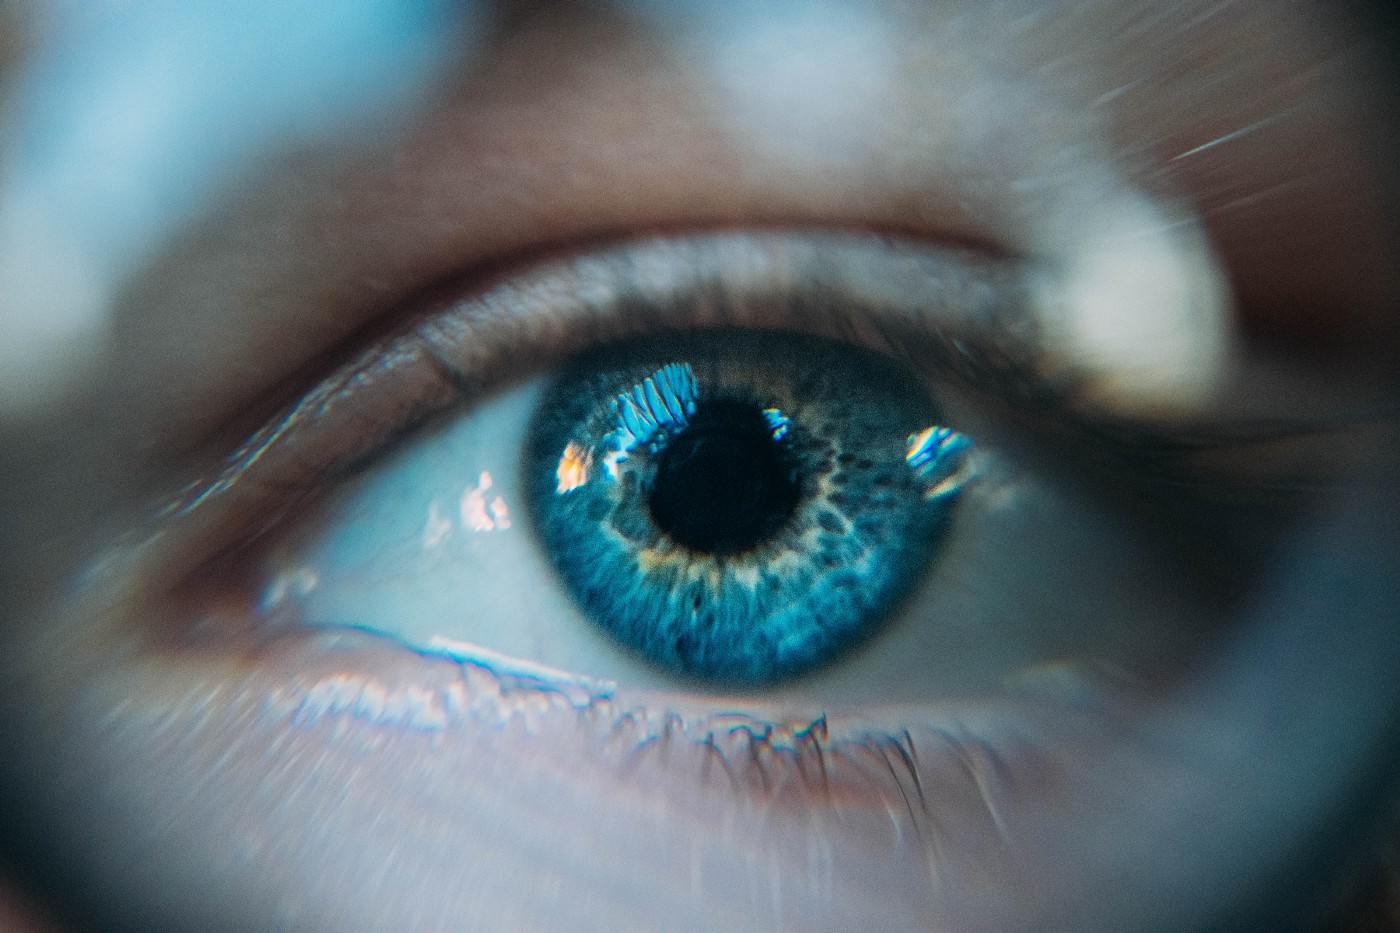 A close-up image of a woman's eye, which is blue.